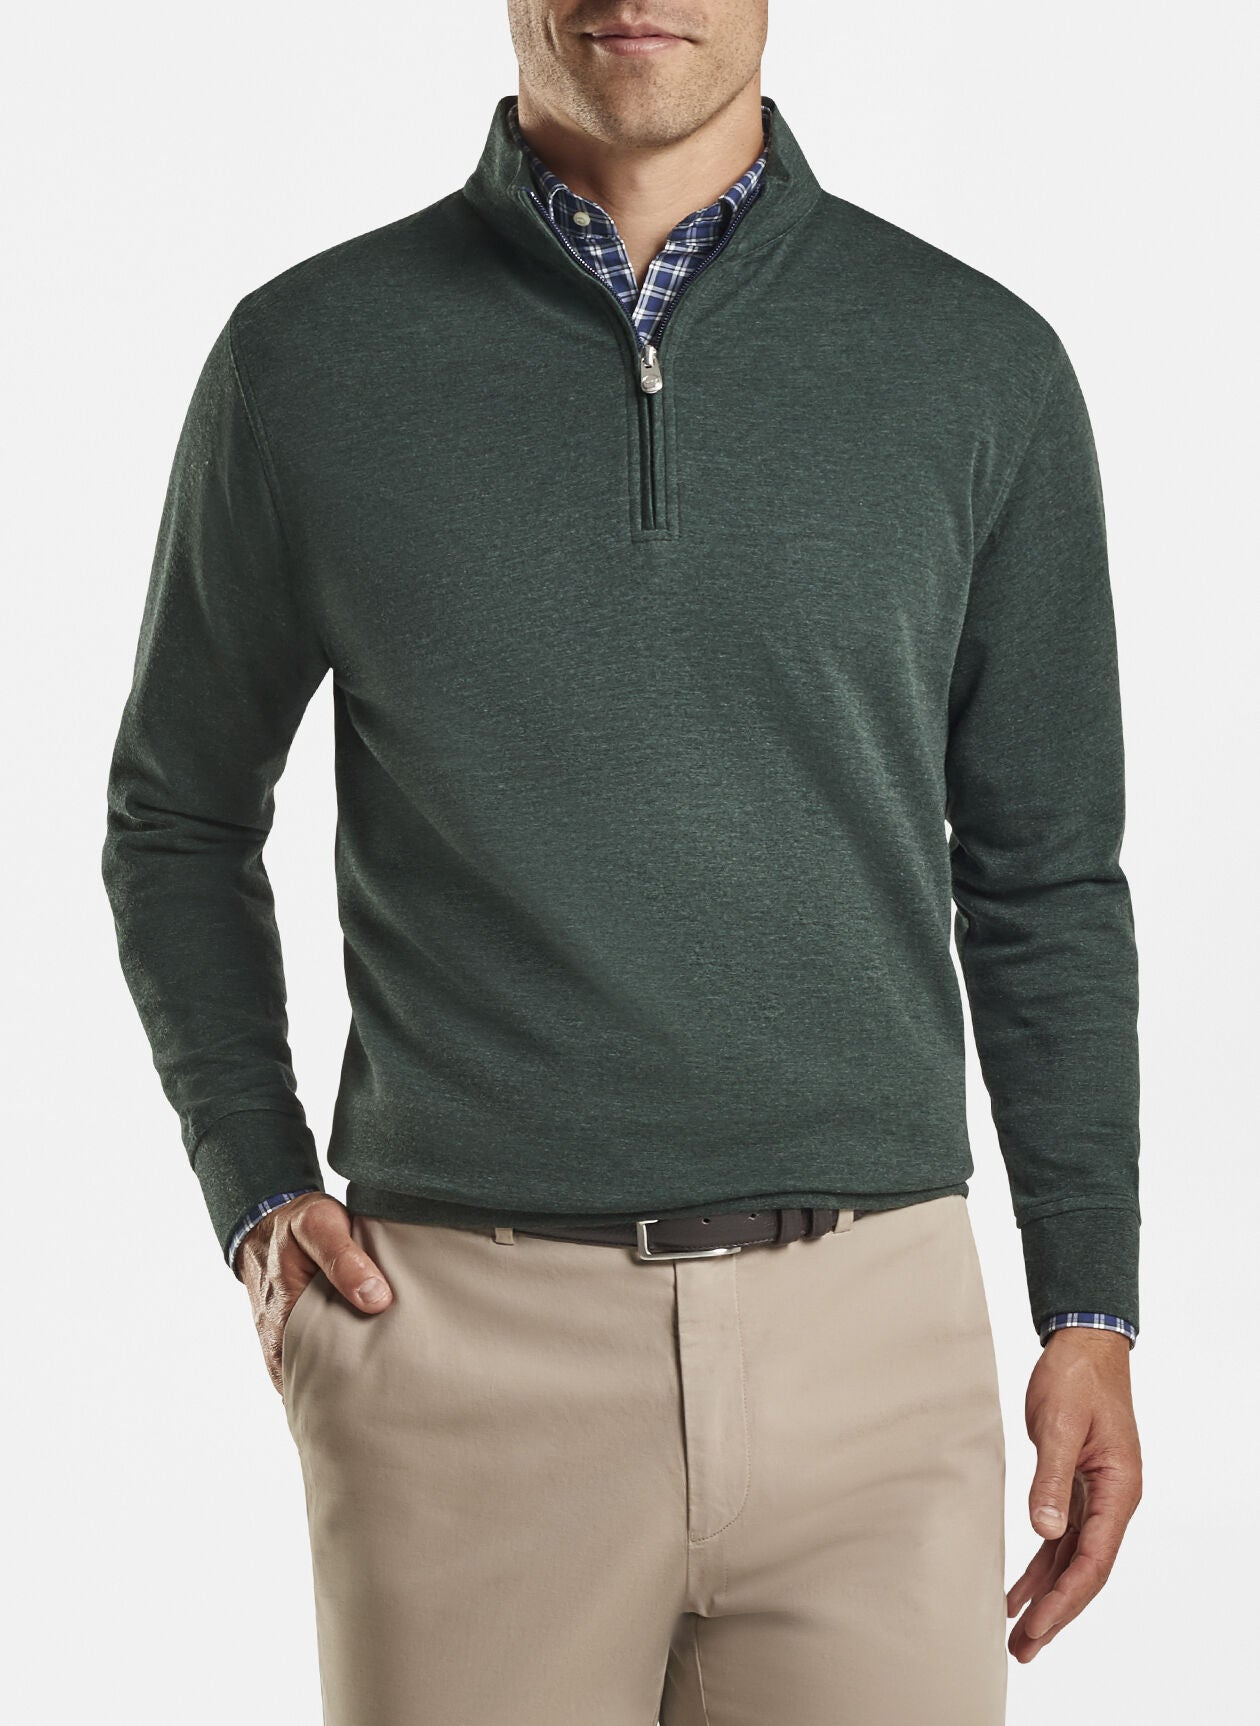 Peter Millar - Crown Comfort Interlock 1/4 Zip Sweater